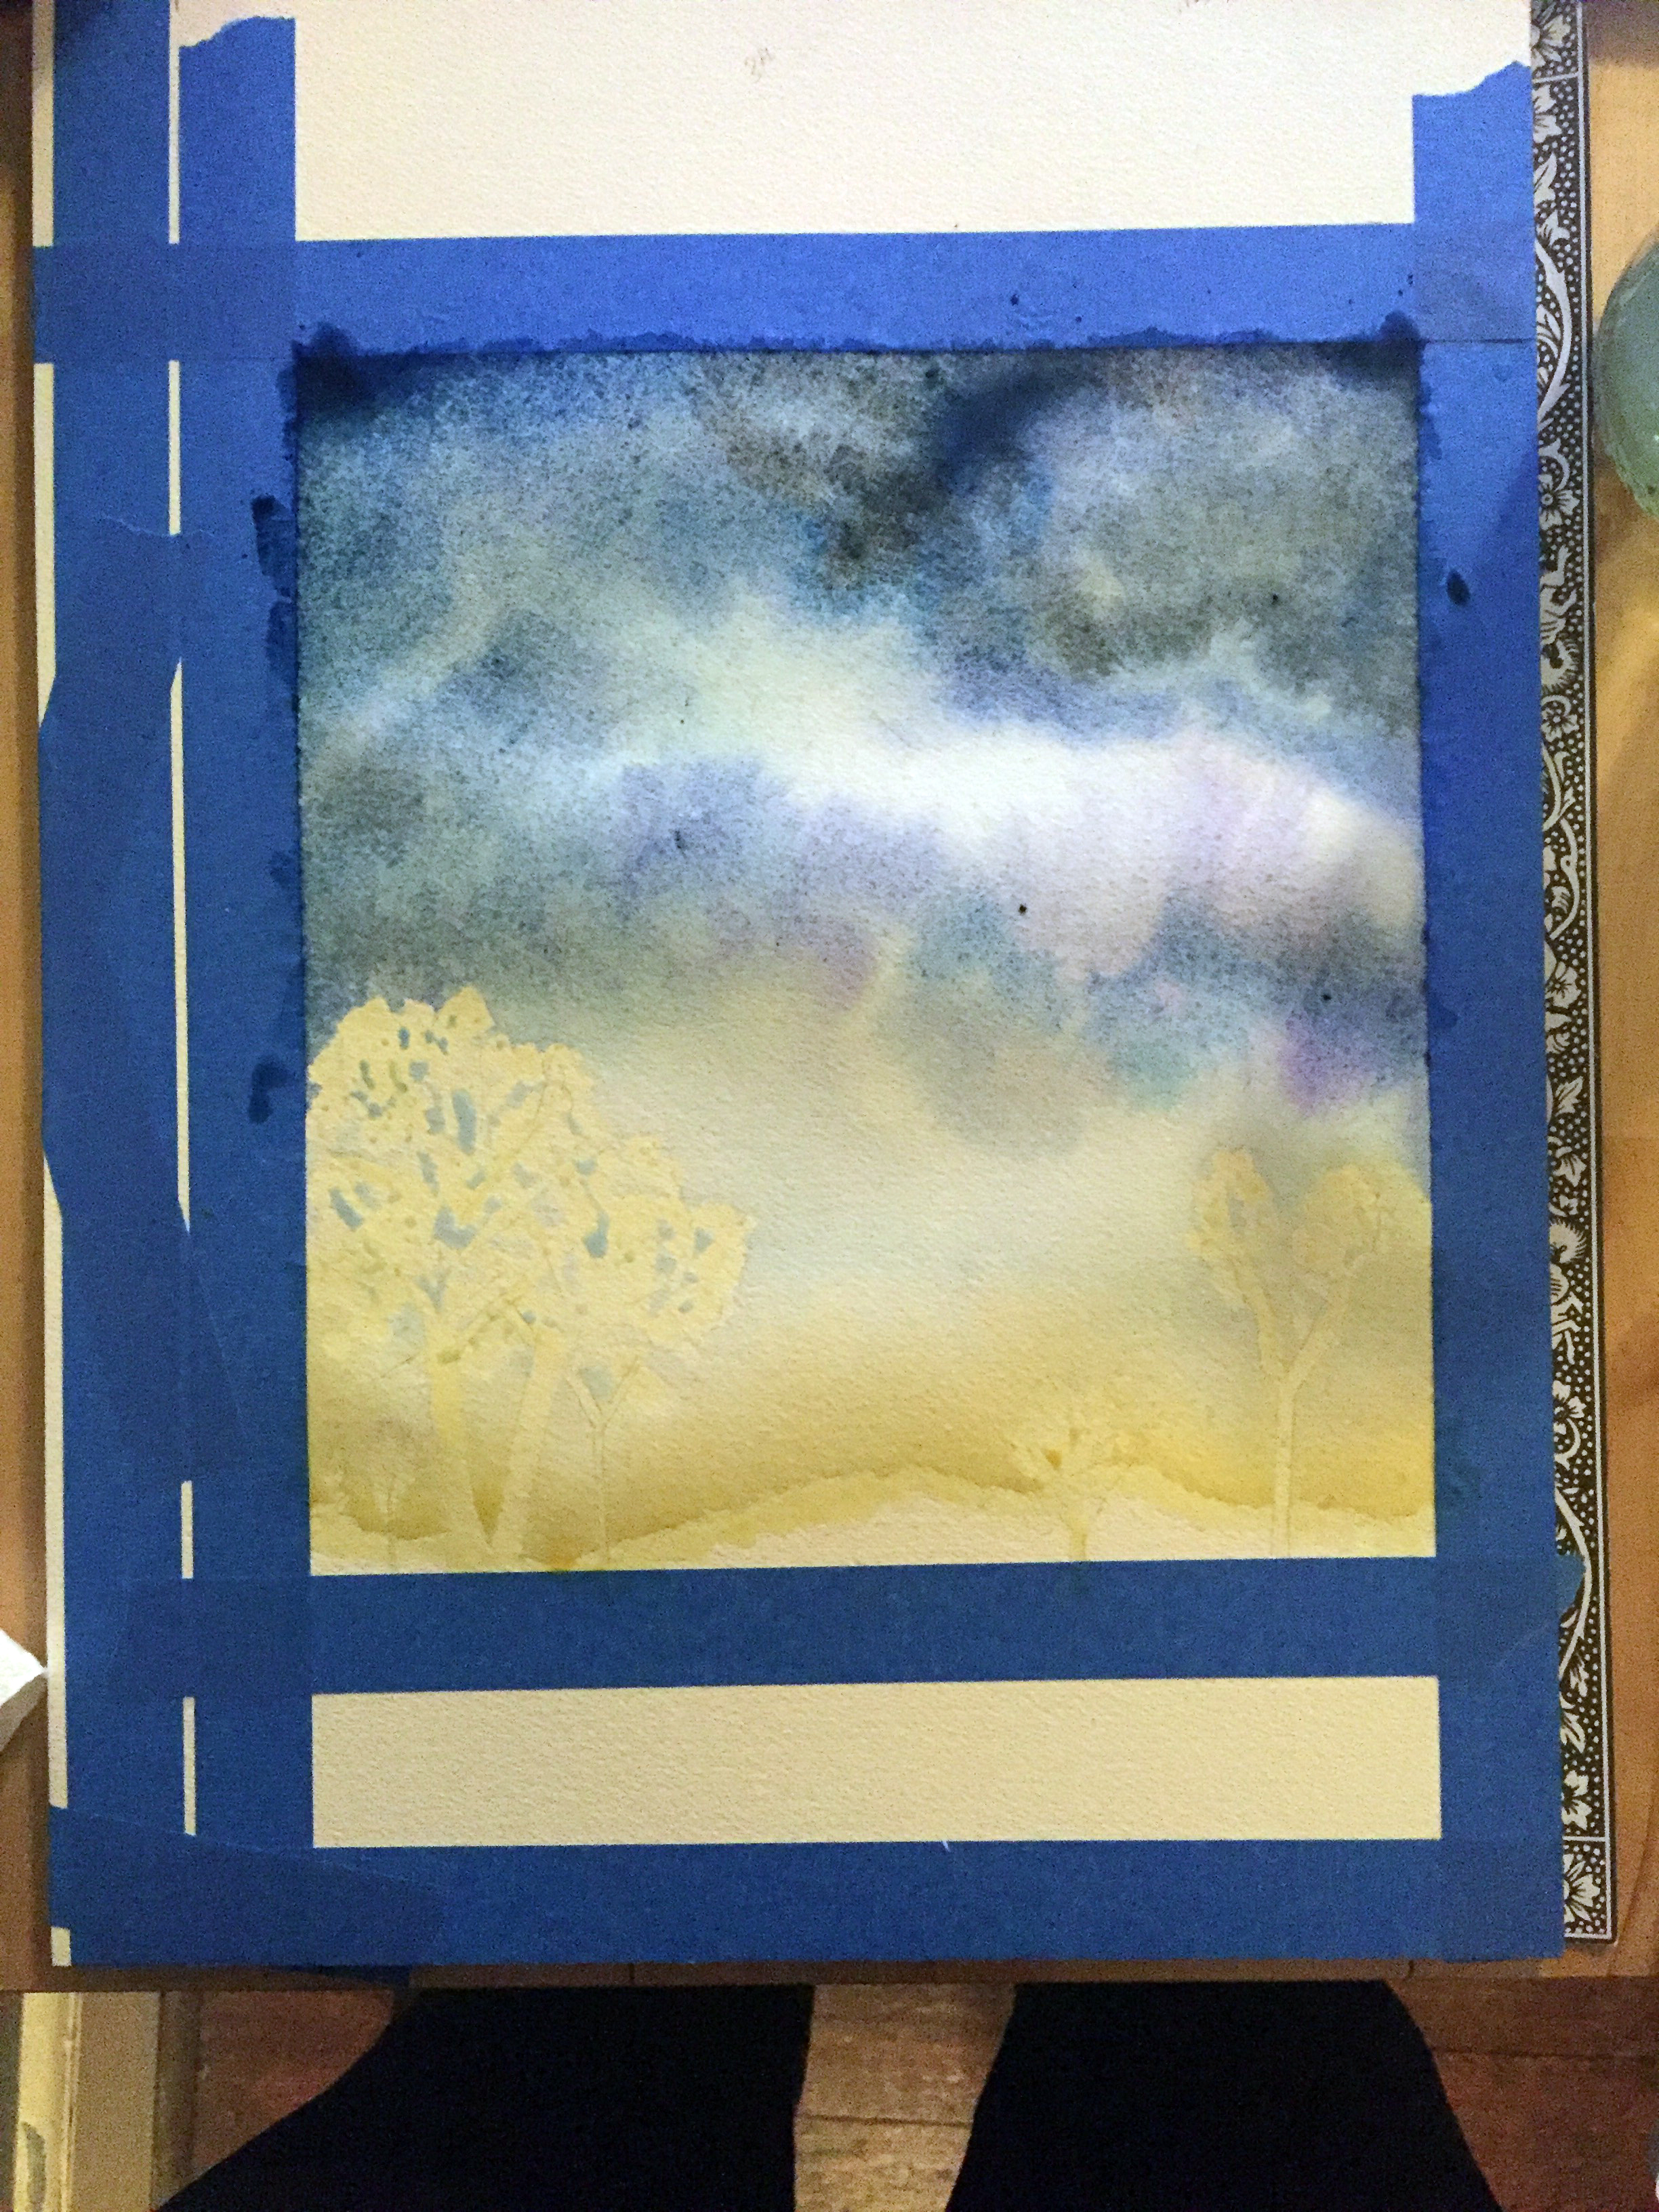 Step 1: Apply masking fluid & begin painting the sky